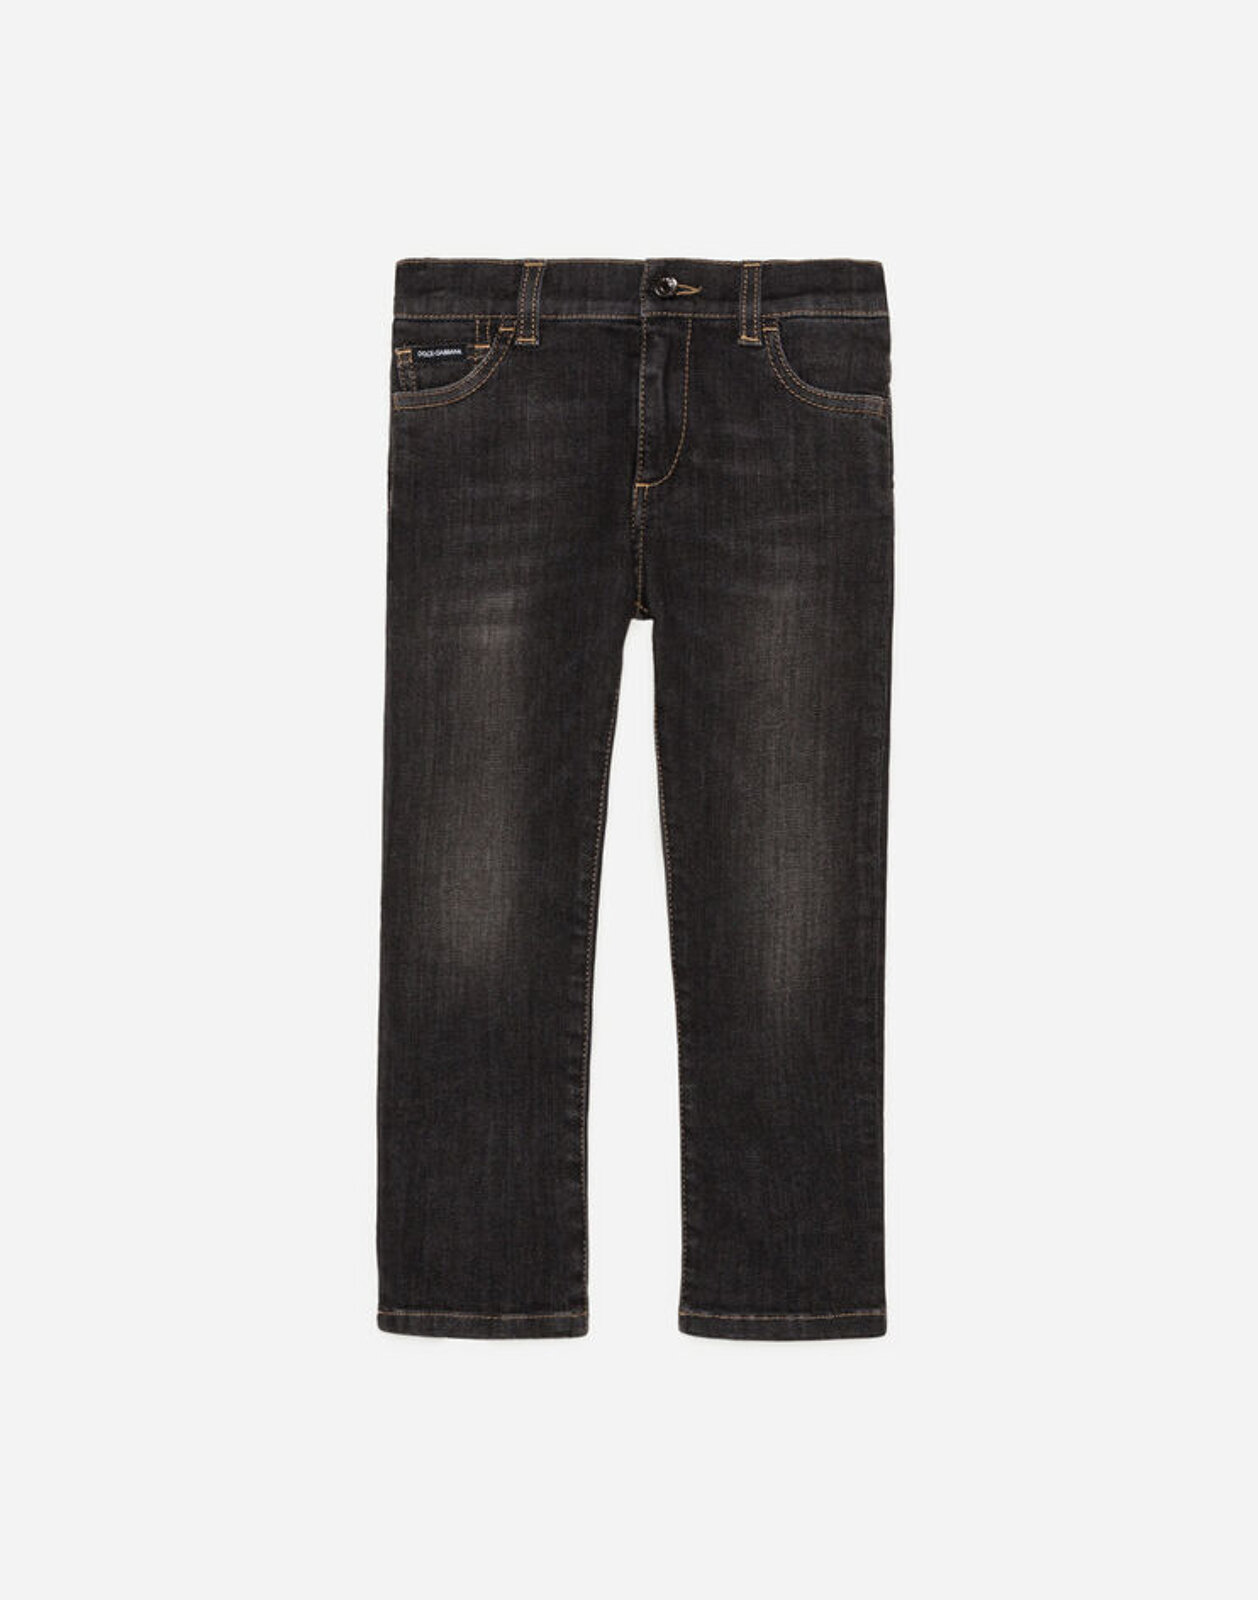 Jeans Regular Stretch Grigio Con Abrasioni - Dolce & Gabbana Junior